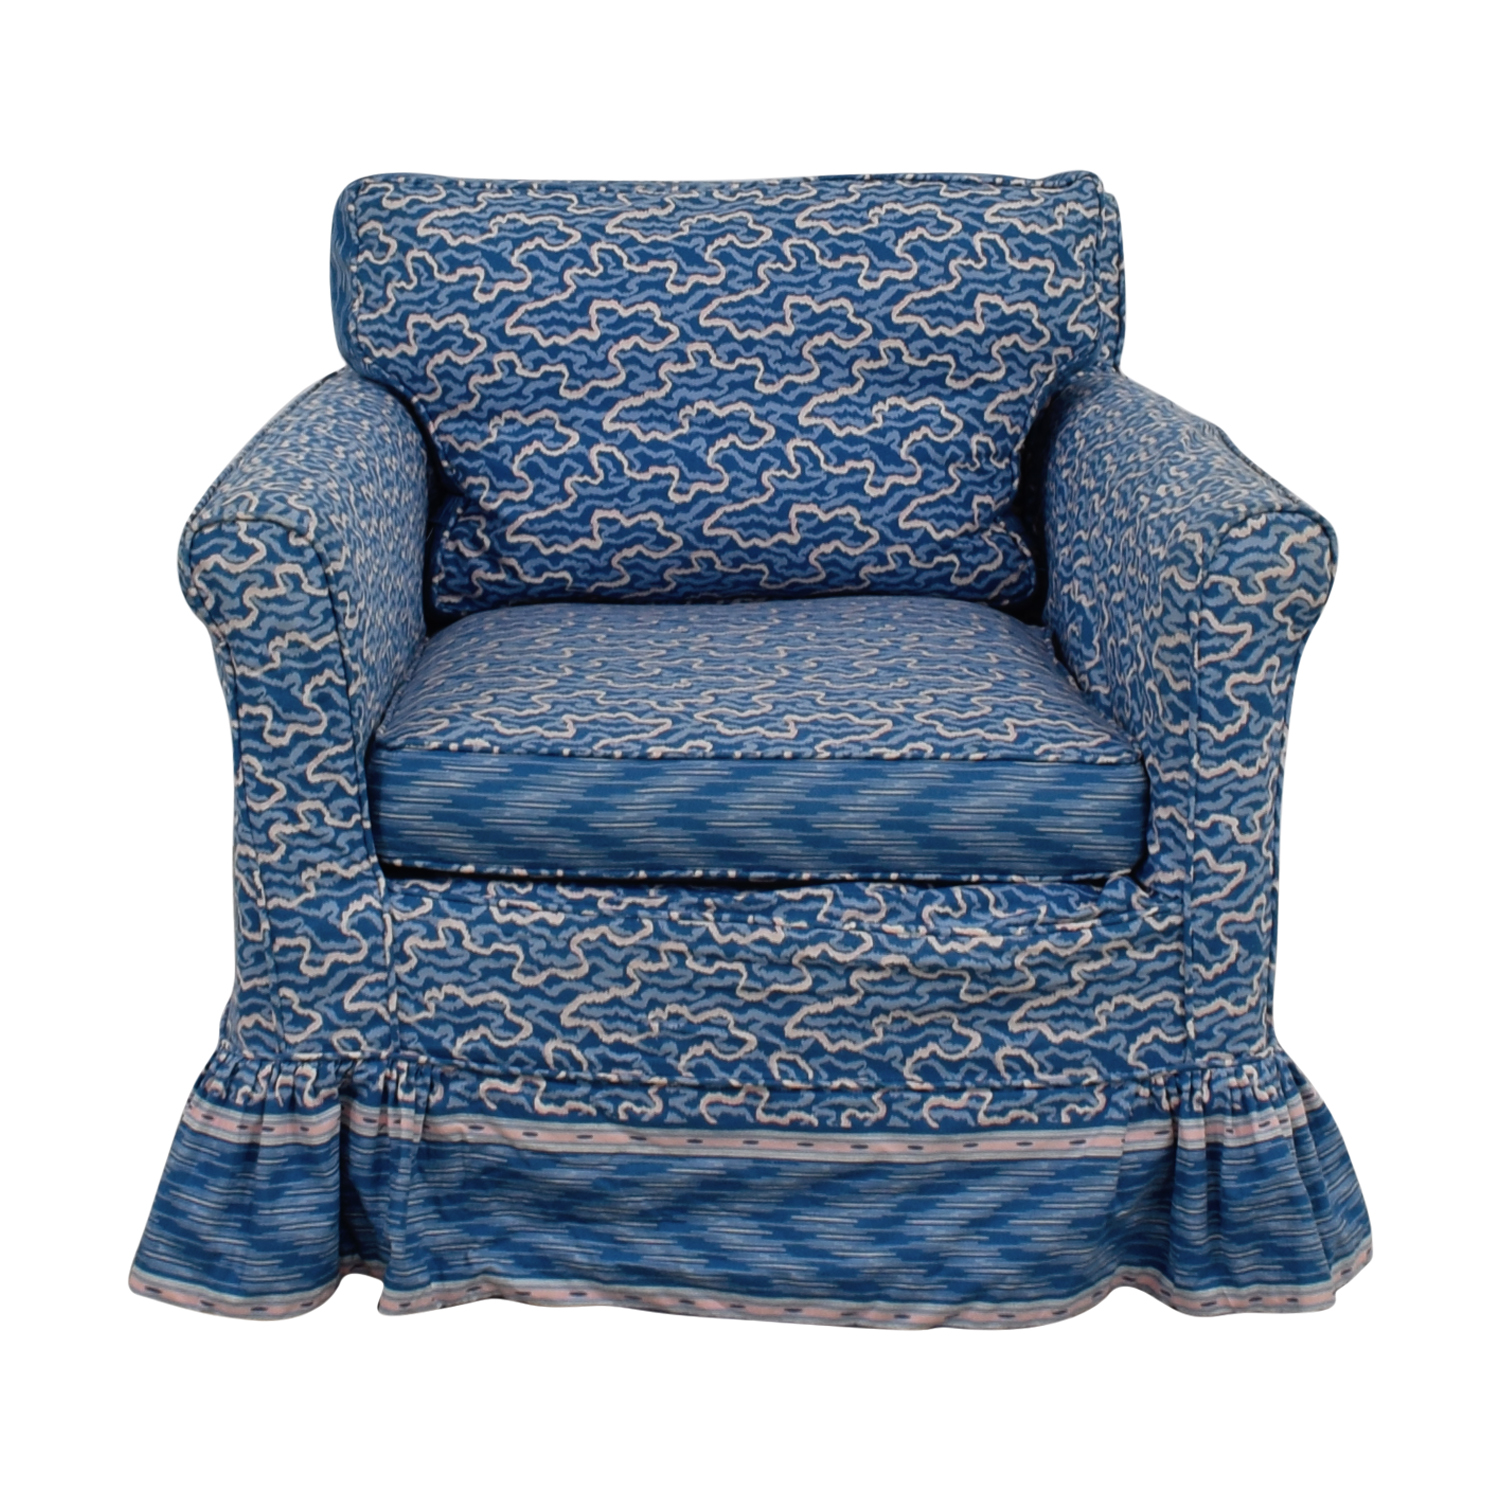 Custom Blue Upholstered Accent Chair Dimensions